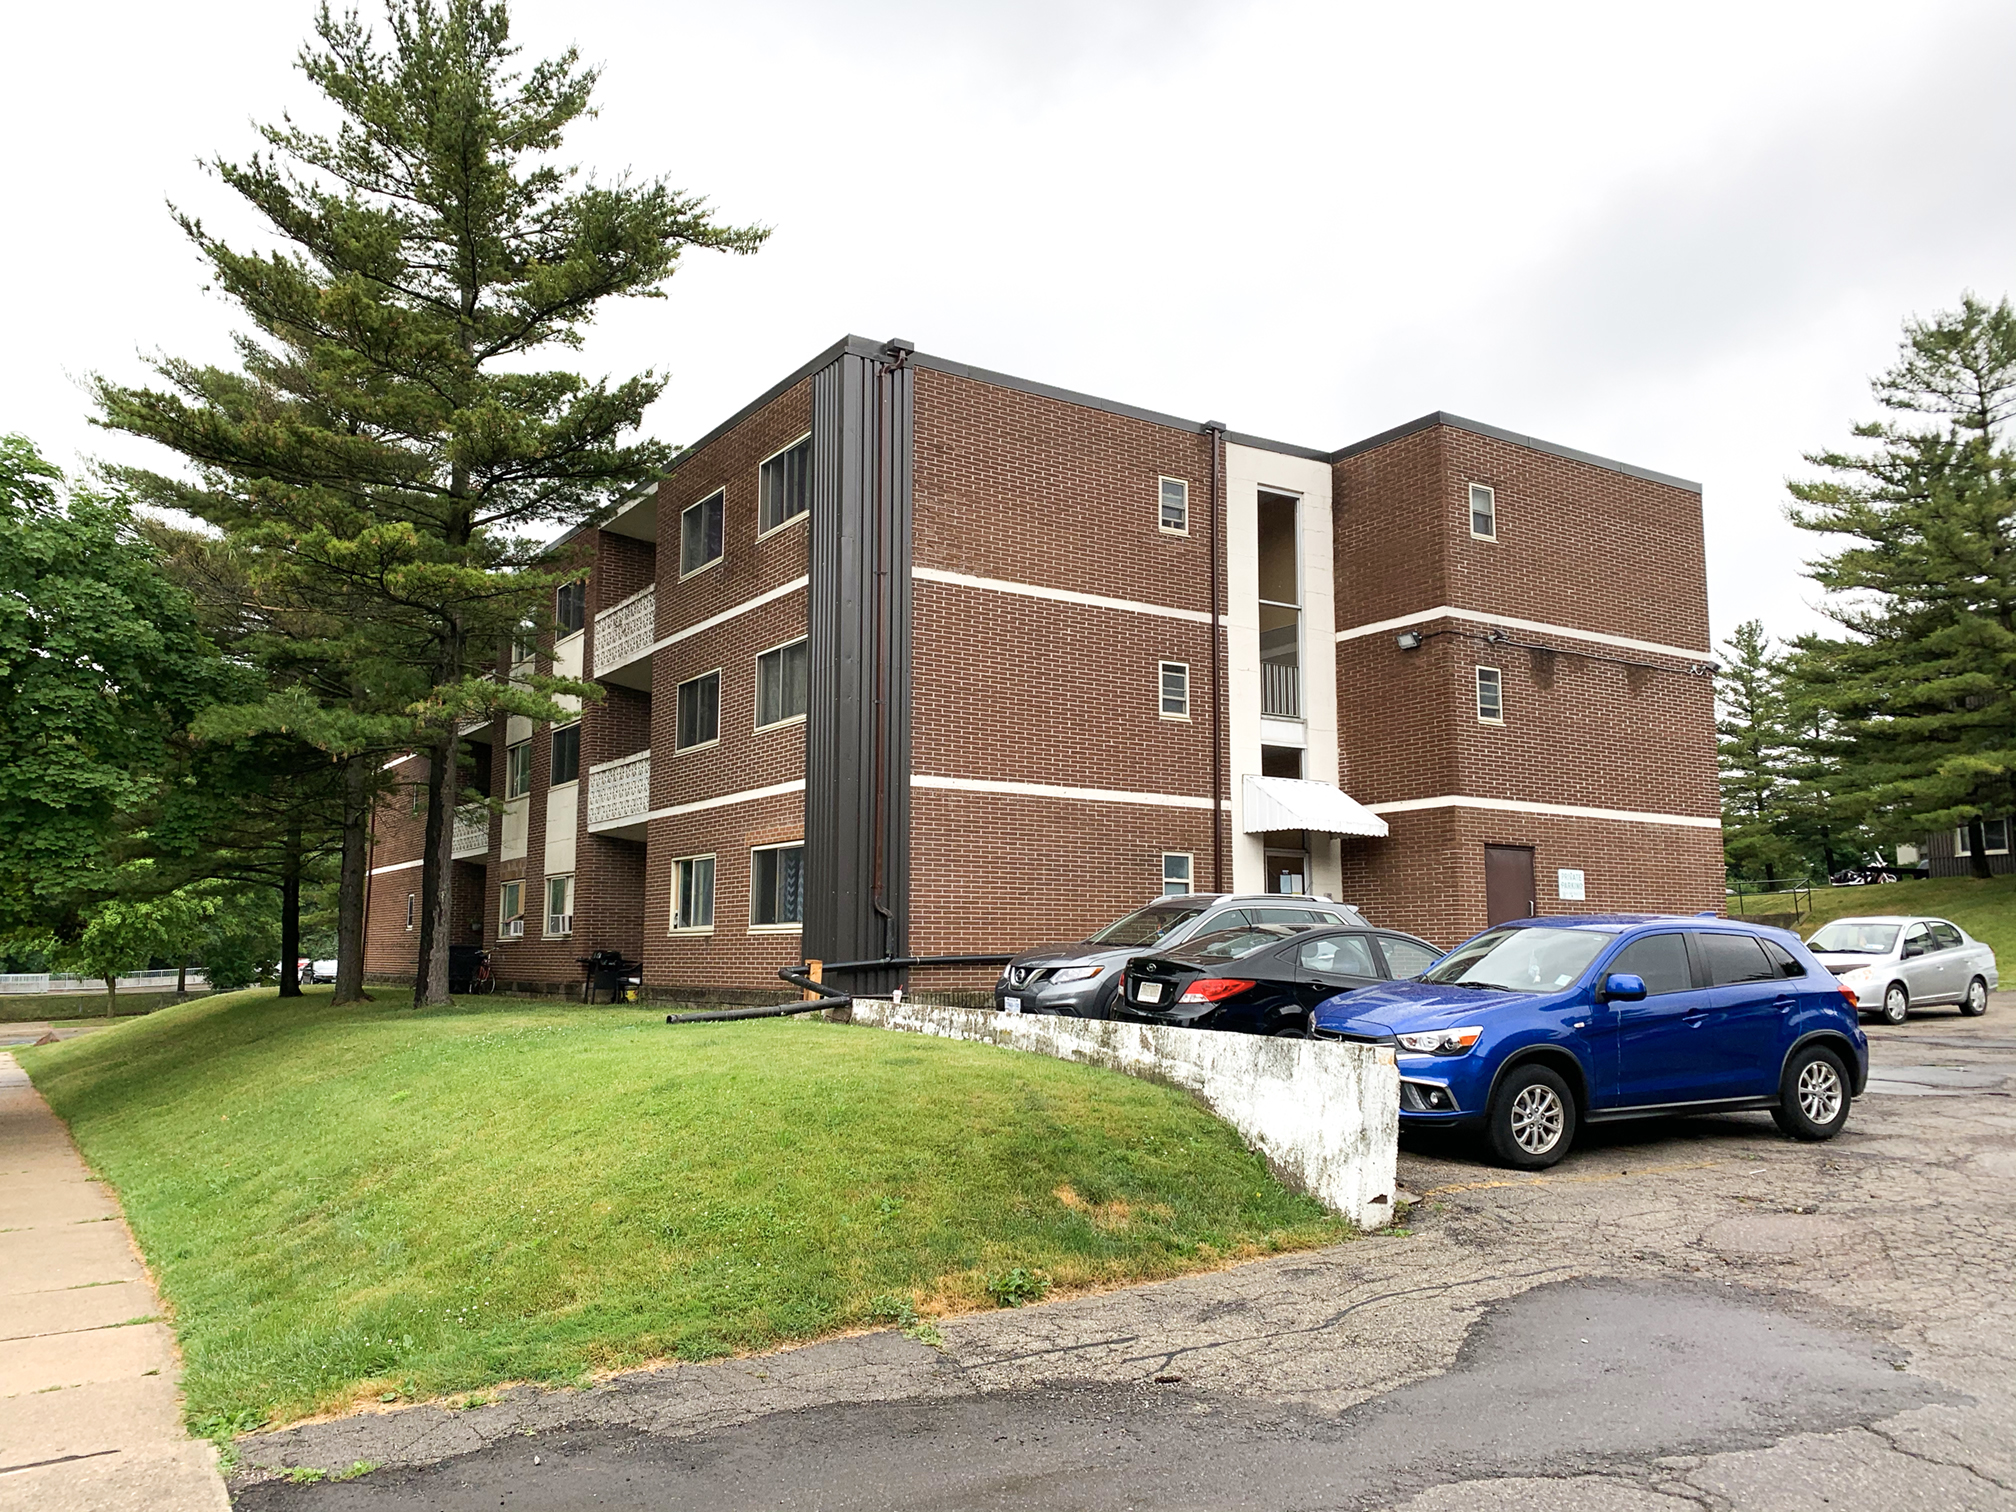 54 Country Hill Drive, Kitchener | Multi-Residential Building for Sale